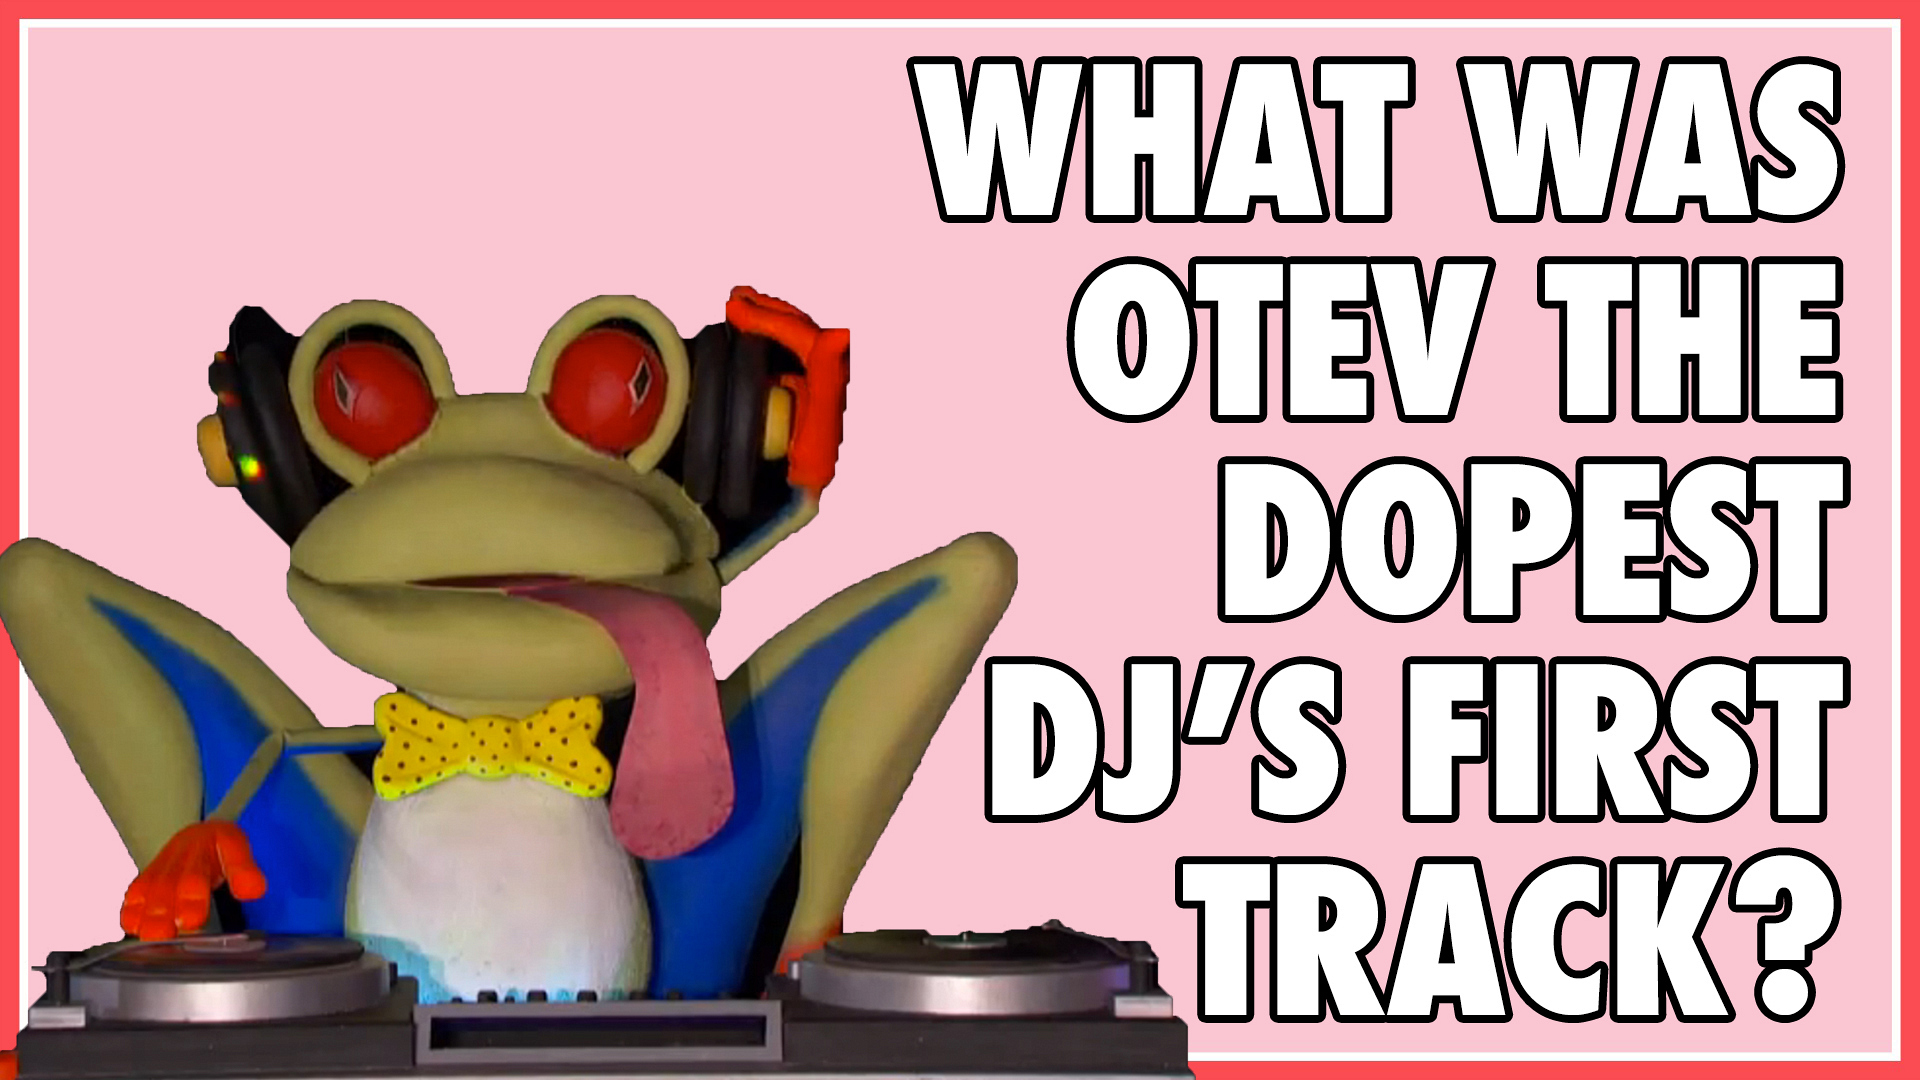 What was OTEV The Dopest DJ's first track?